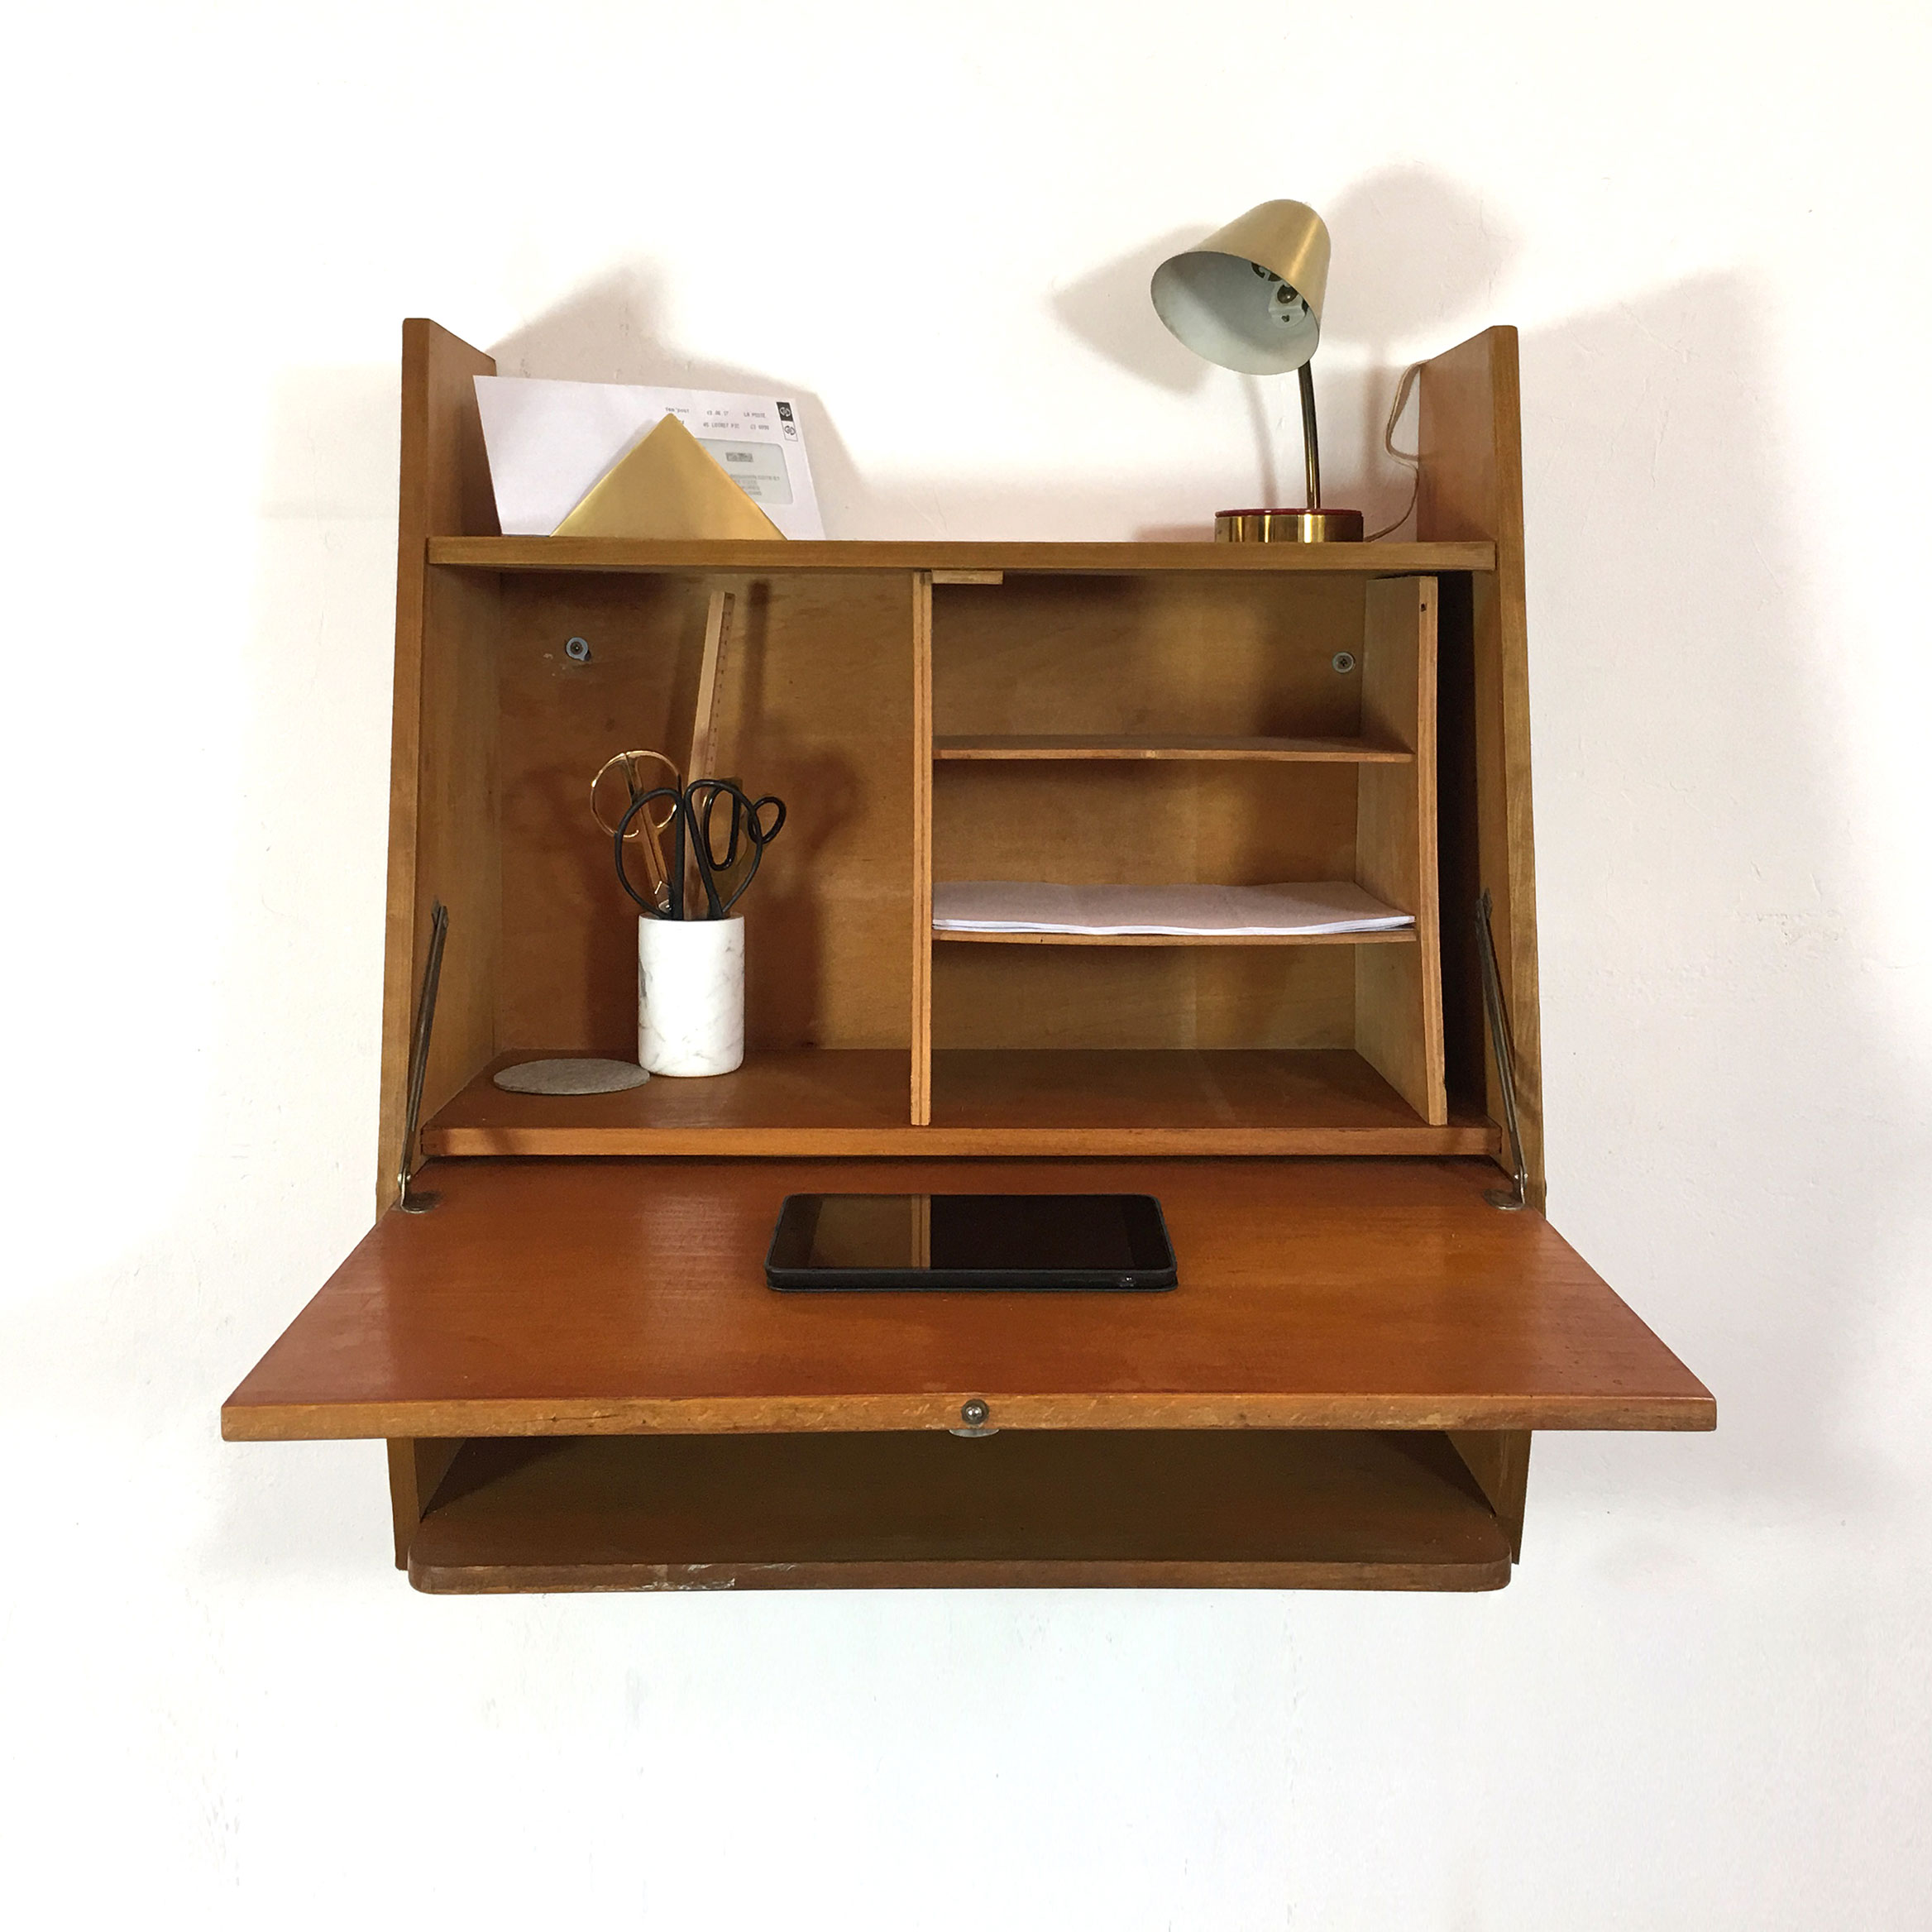 Wall mounted desk from the 1950's-1960's.